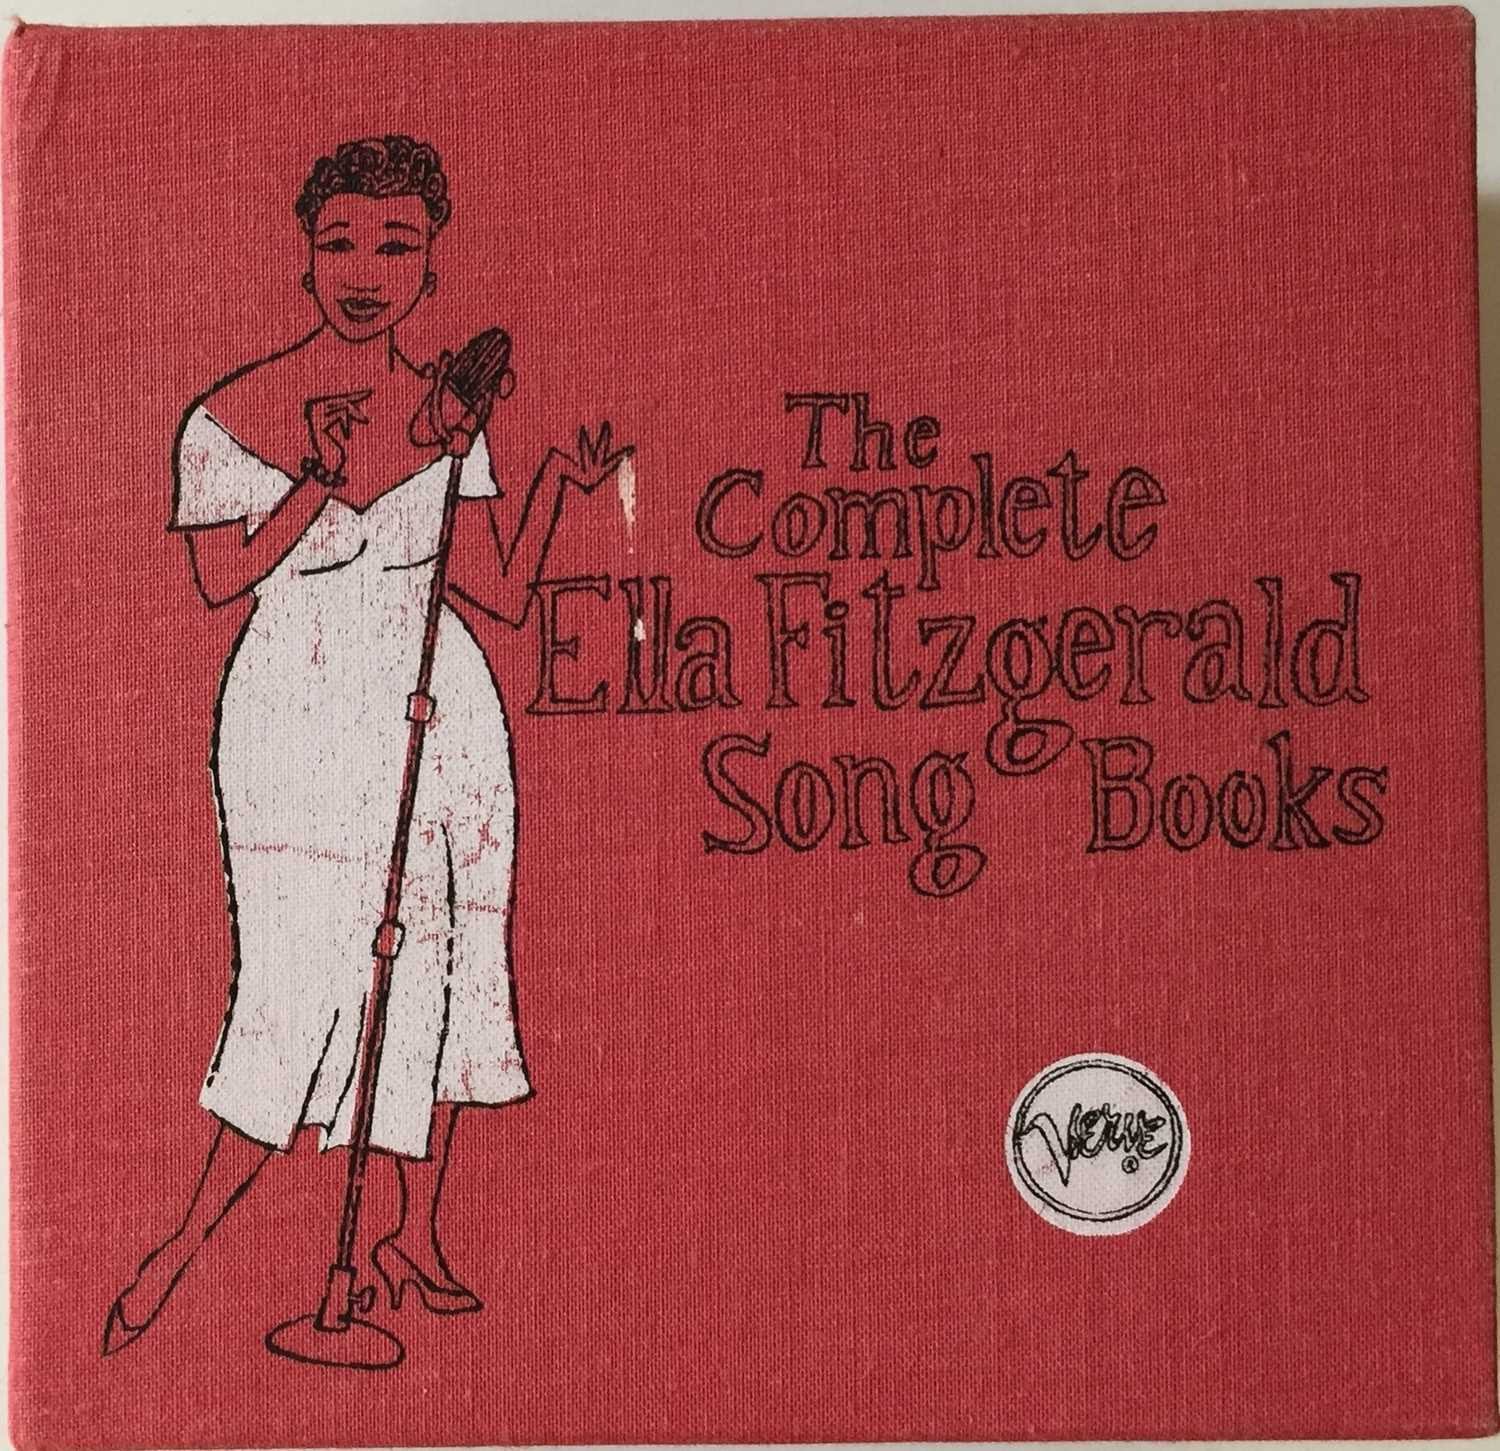 ELLA FITZGERALD - THE COMPLETE SONG BOOKS (16 CD SET - 314519 832-2)